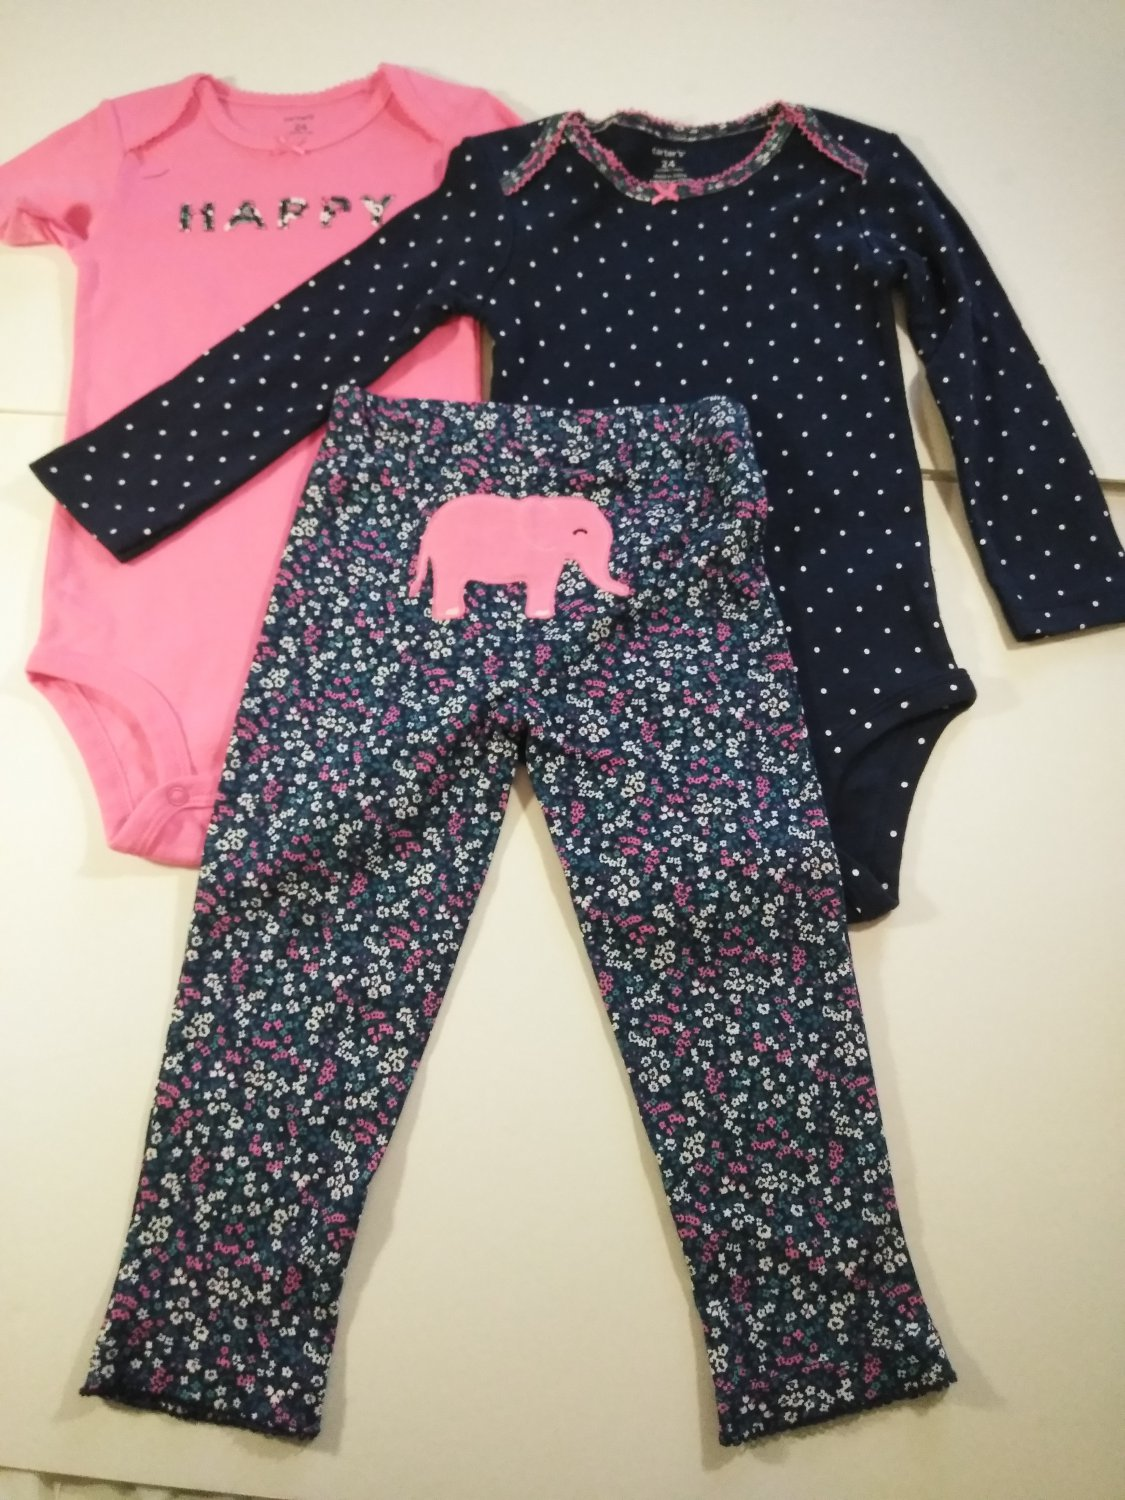 Baby Girl's Cater Embroidered Multi Color bodysuits & Pant Set - 24 Months